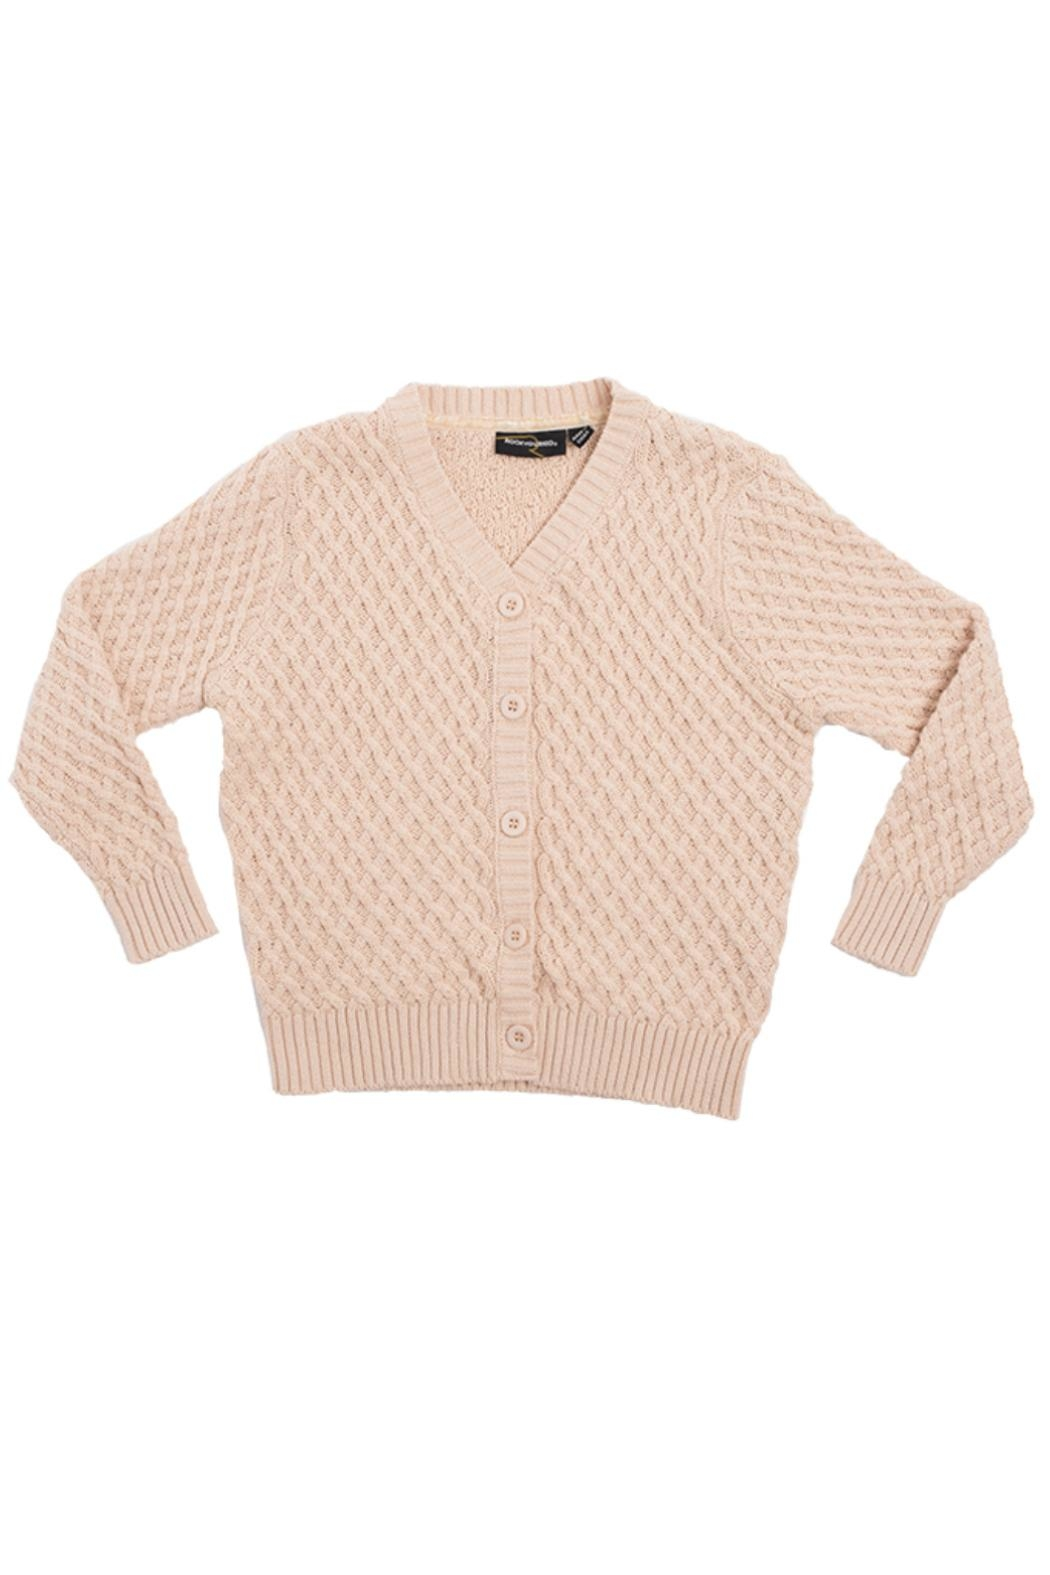 Rock Your Baby Vintage Oatmeal Cardigan - Main Image